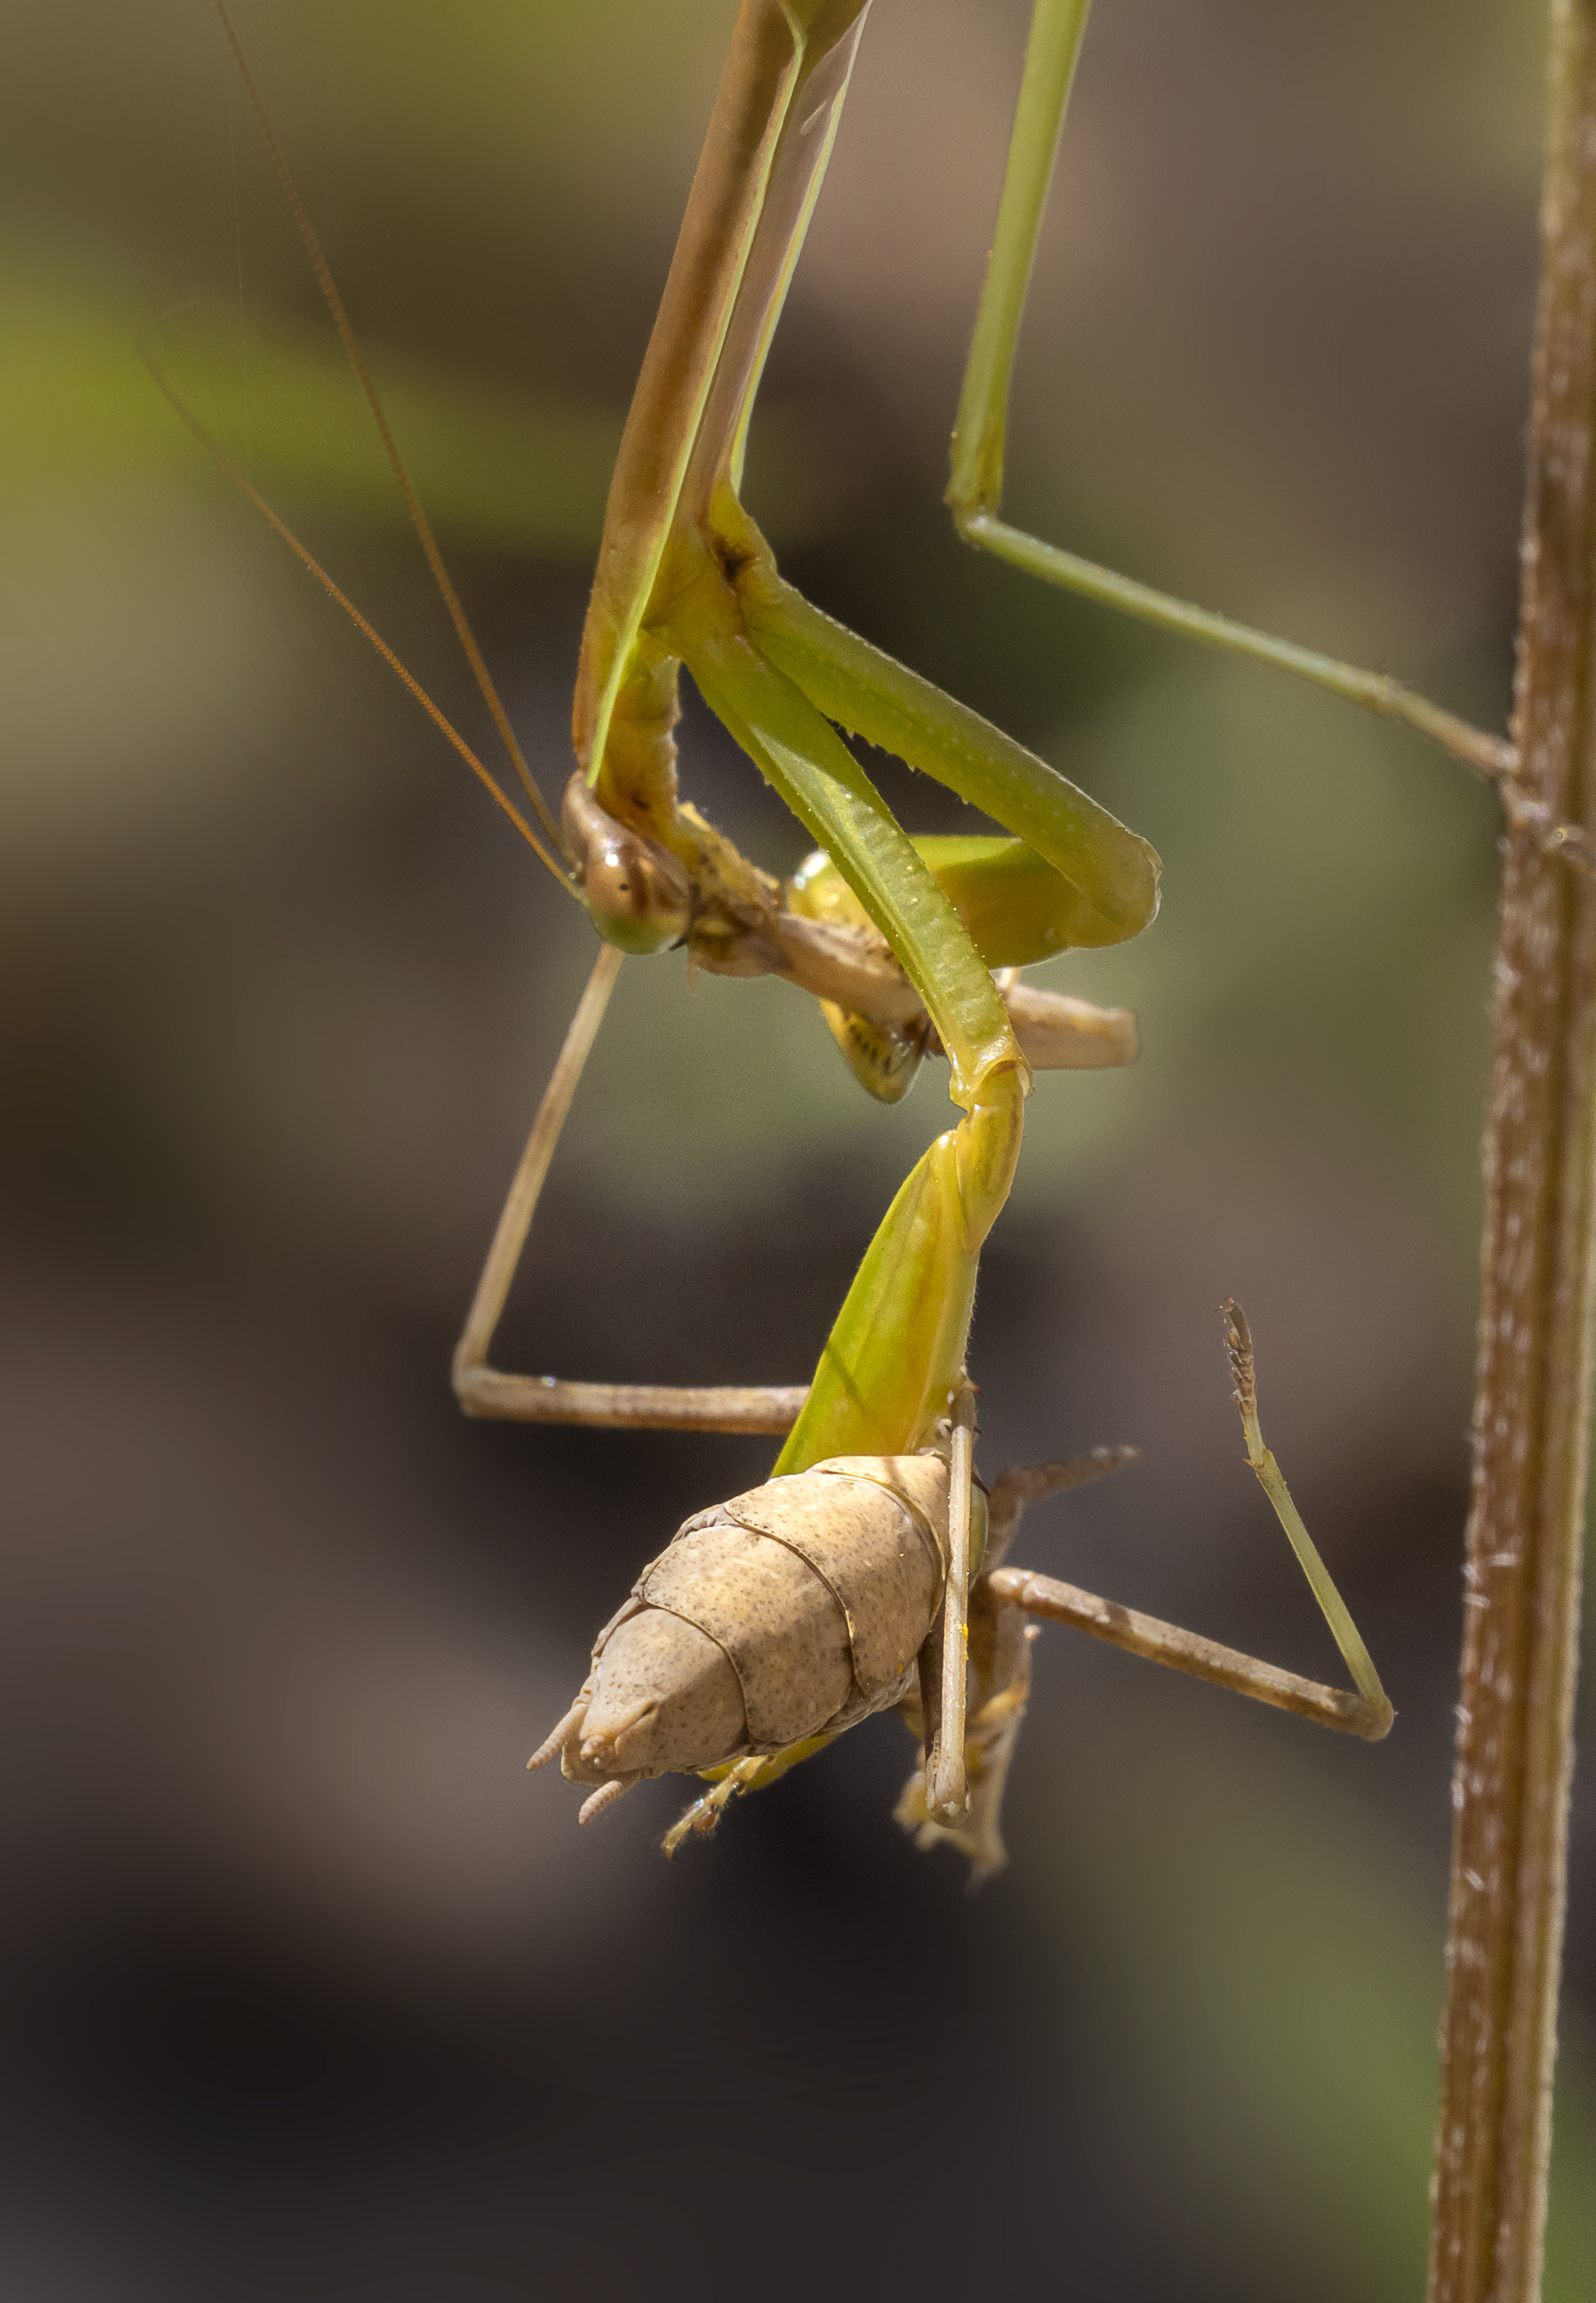 Praying_Mantis_yrd_v2_9_19_150mm_76A6080